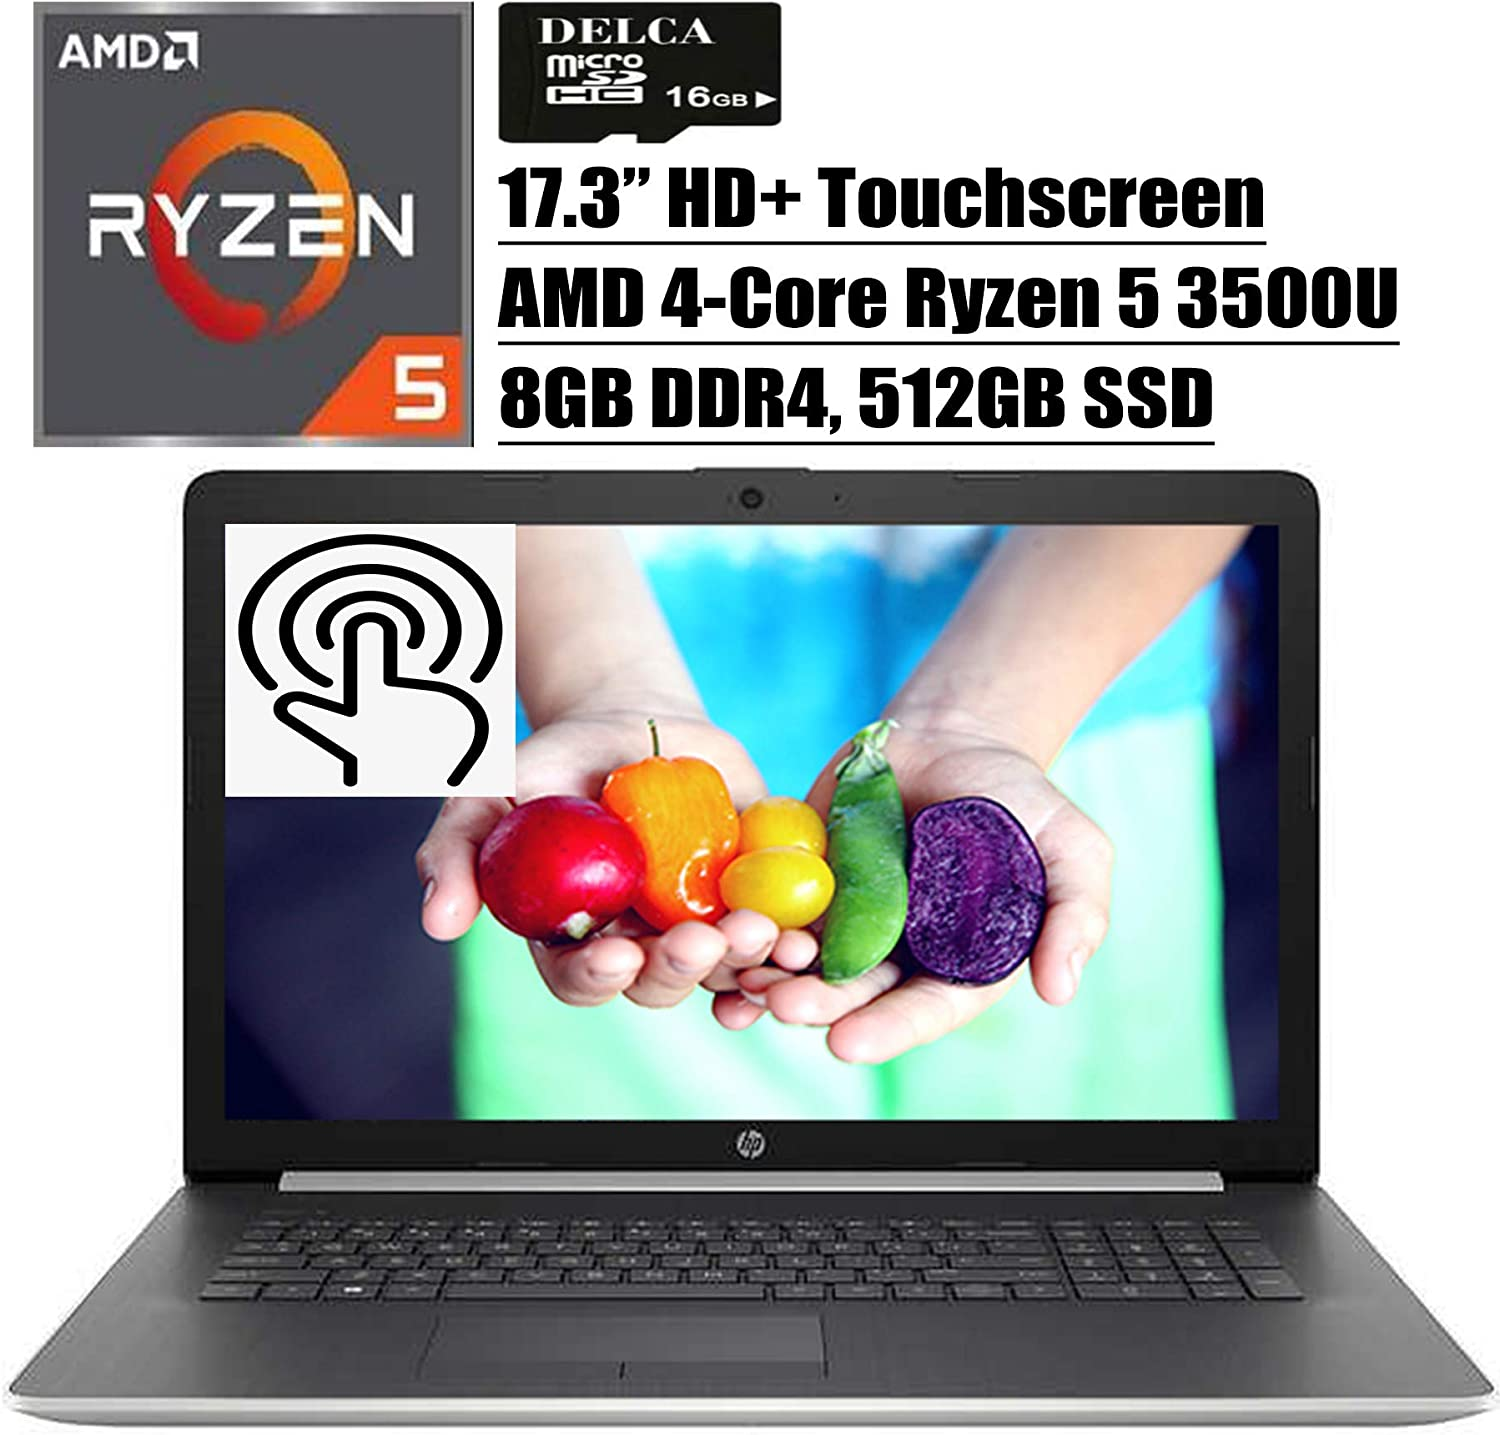 "HP 17 2020 Newest Premium Laptop Computer I 17.3"" HD+ Touchscreen I AMD Quad-Core Ryzen 5 3500U (>i7-7500U) I 8GB DDR4 512GB SSD I WiFi HDMI Backlit KB DVD Win 10 + Delca 16GB Micro SD Card"